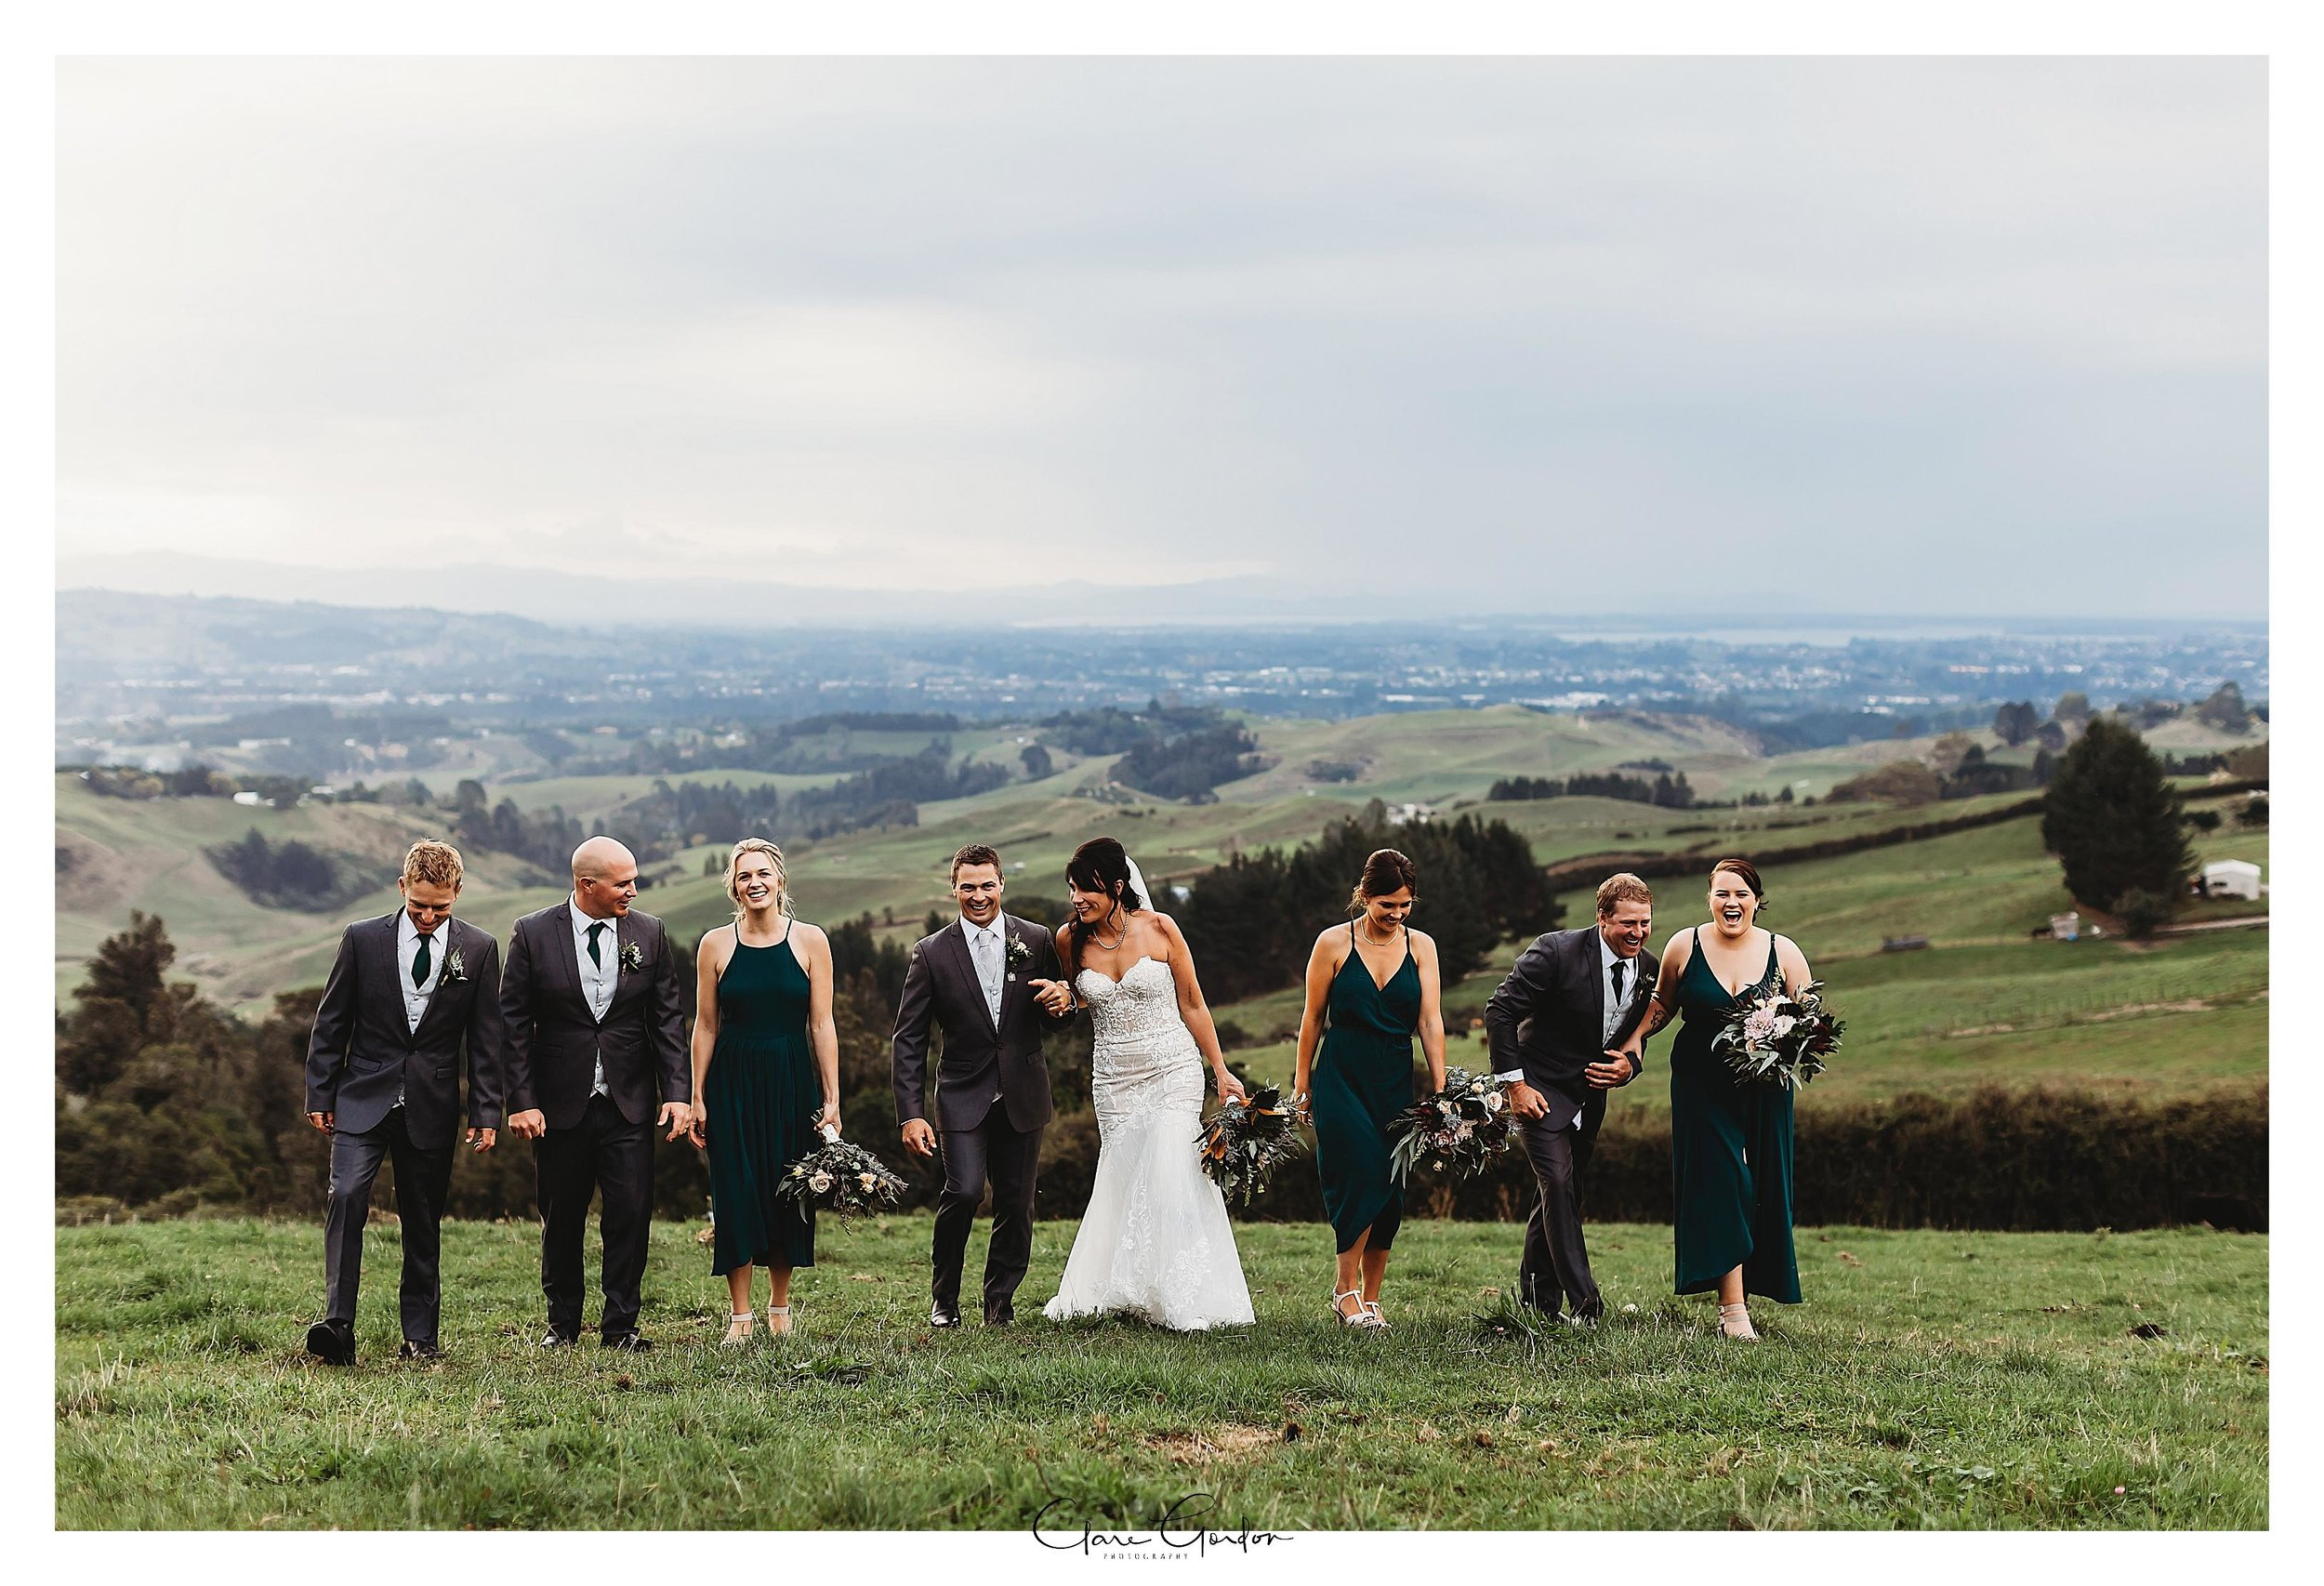 Eagle-ridge-wedding-photo-bride-and-groom-and-bridal-party-in-field